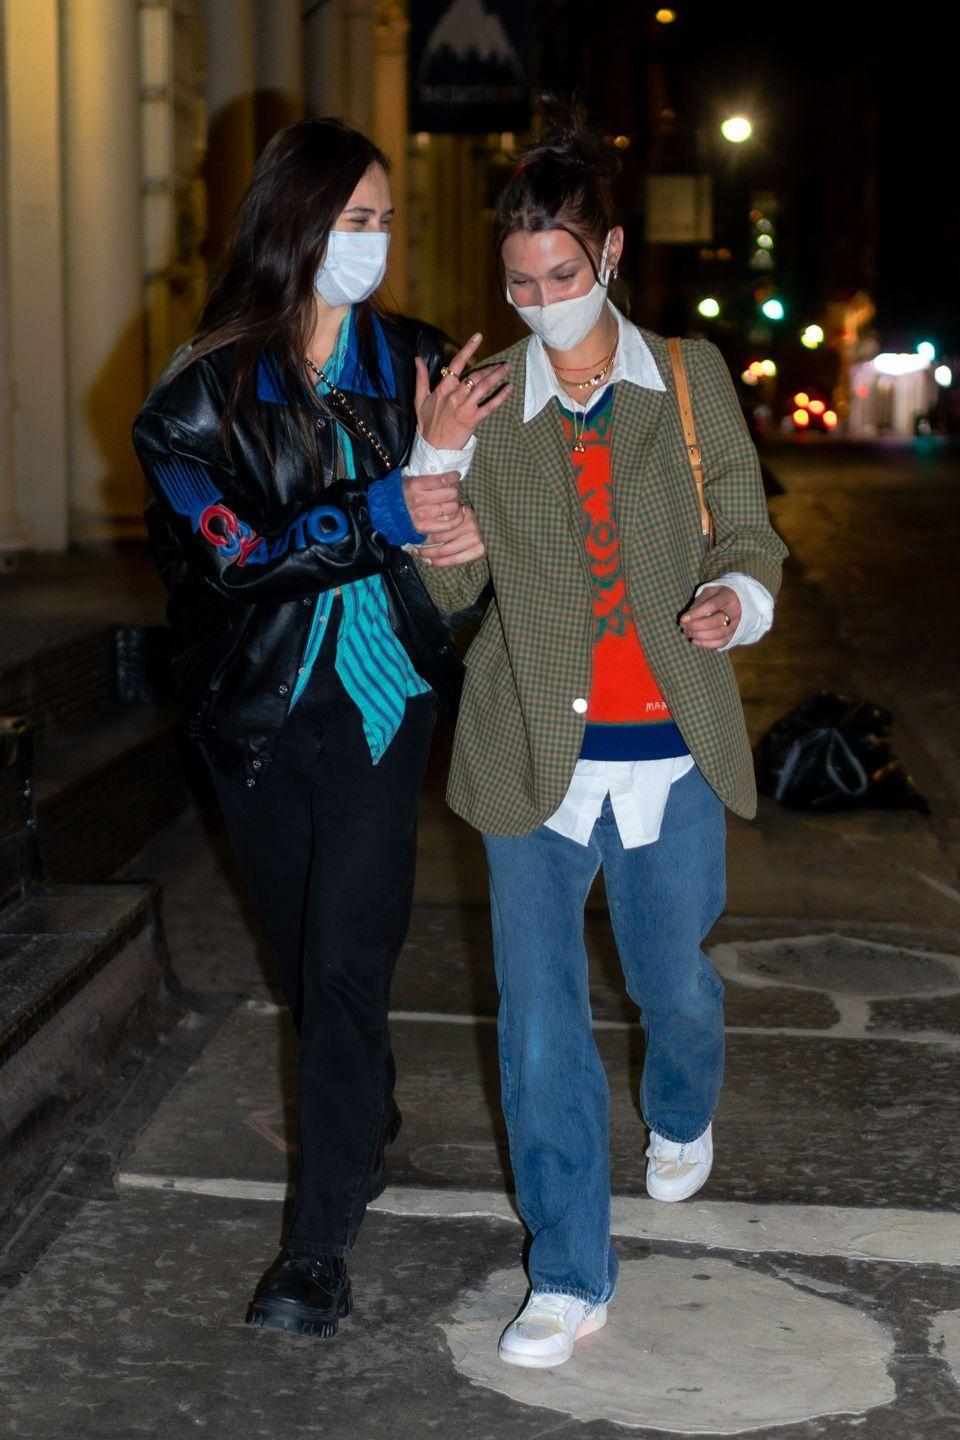 <p>The 23-year-old model was seen walking through the streets of Manhattan with a friend on Monday September 21 wearing a white face mask.</p><p>The star had spent the evening at The Ainsworth restaurant before taking a scooter ride home.</p><p>Hadid wore a laidback look for her night out which included oversized jeans, white trainers, a white shirt, orange jumper and gingham blazer. She teamed the look with a Louis Vuitton handbag.</p><p>The model is due to become an auntie any day now, with sister Gigi expected to give birth this month. </p>